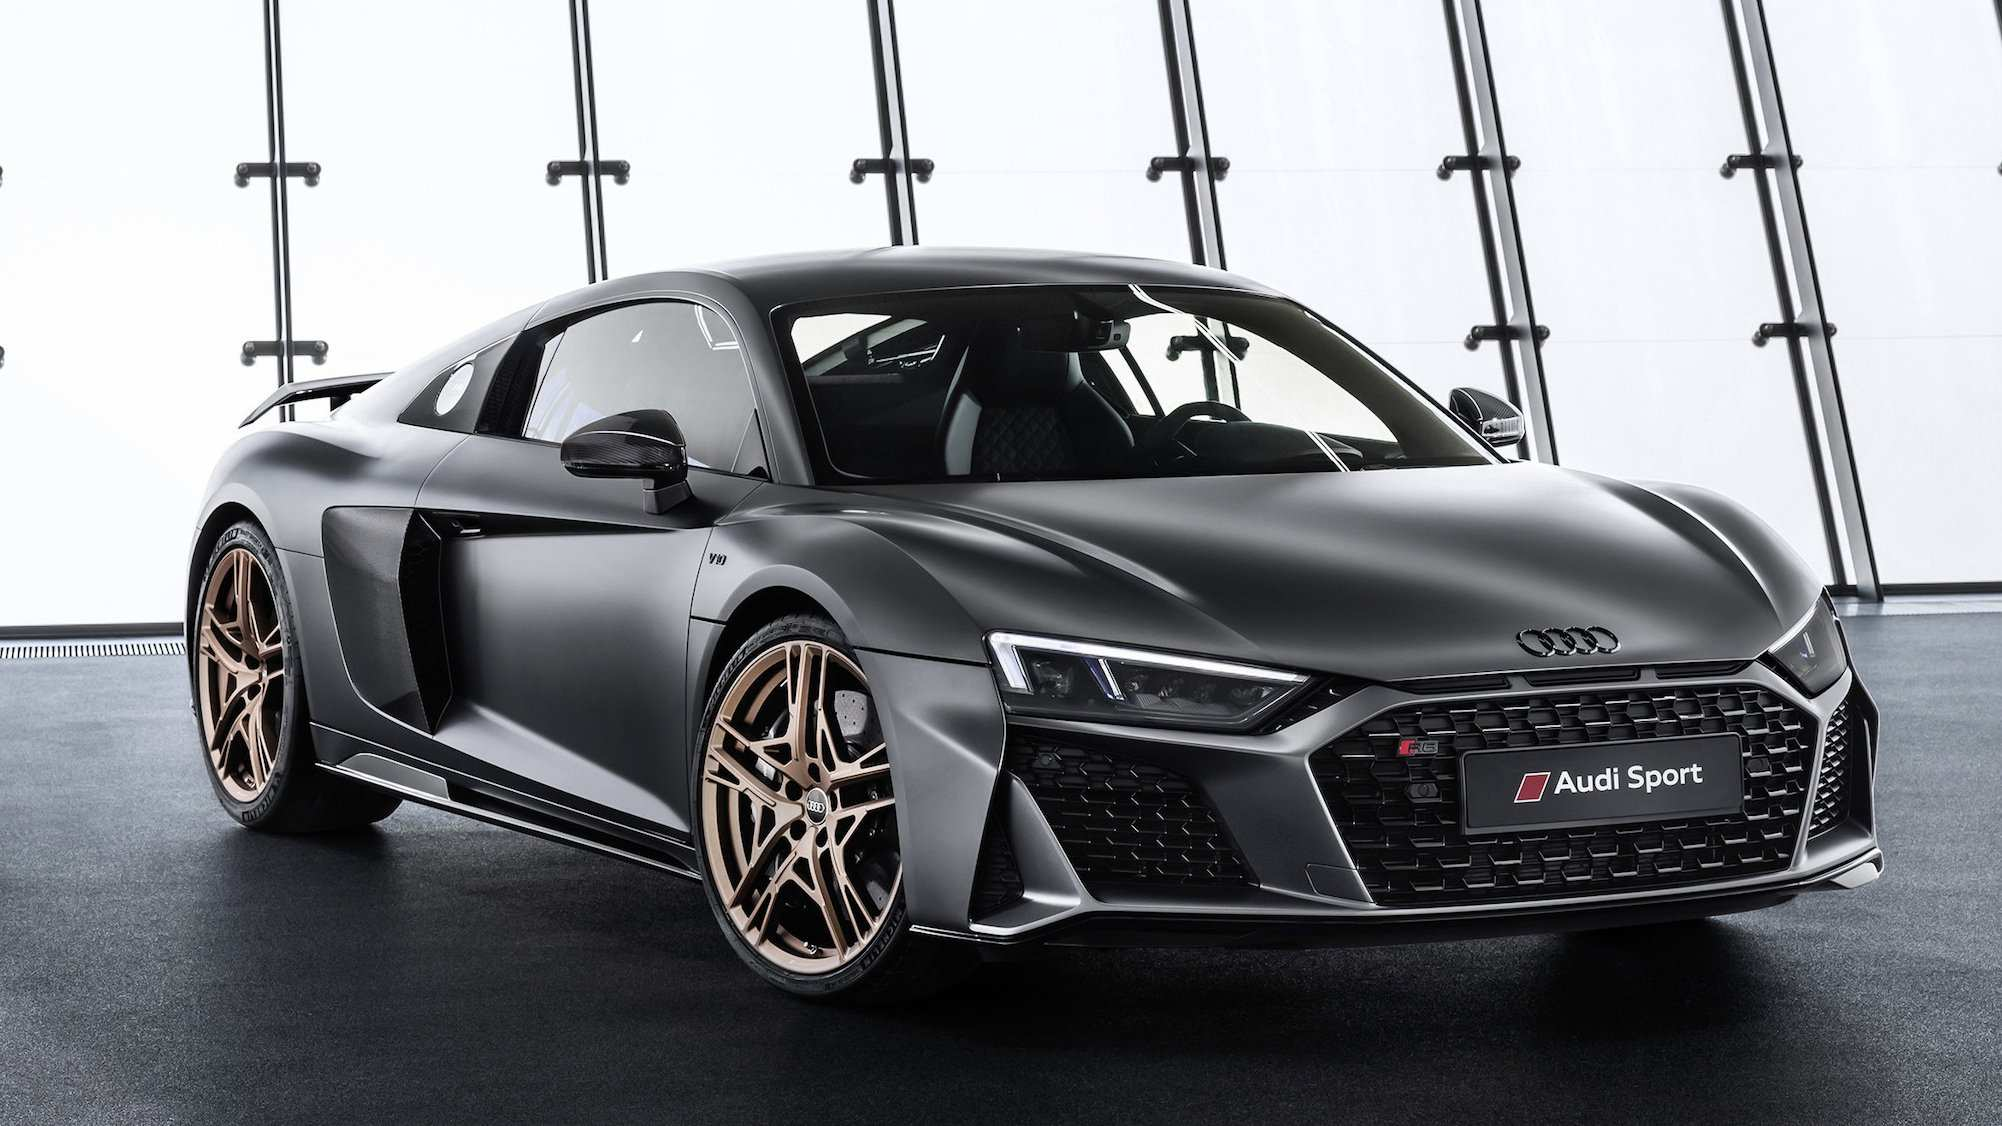 68 Gallery of 2020 Audi R8 V10 Performance Exterior with 2020 Audi R8 V10 Performance